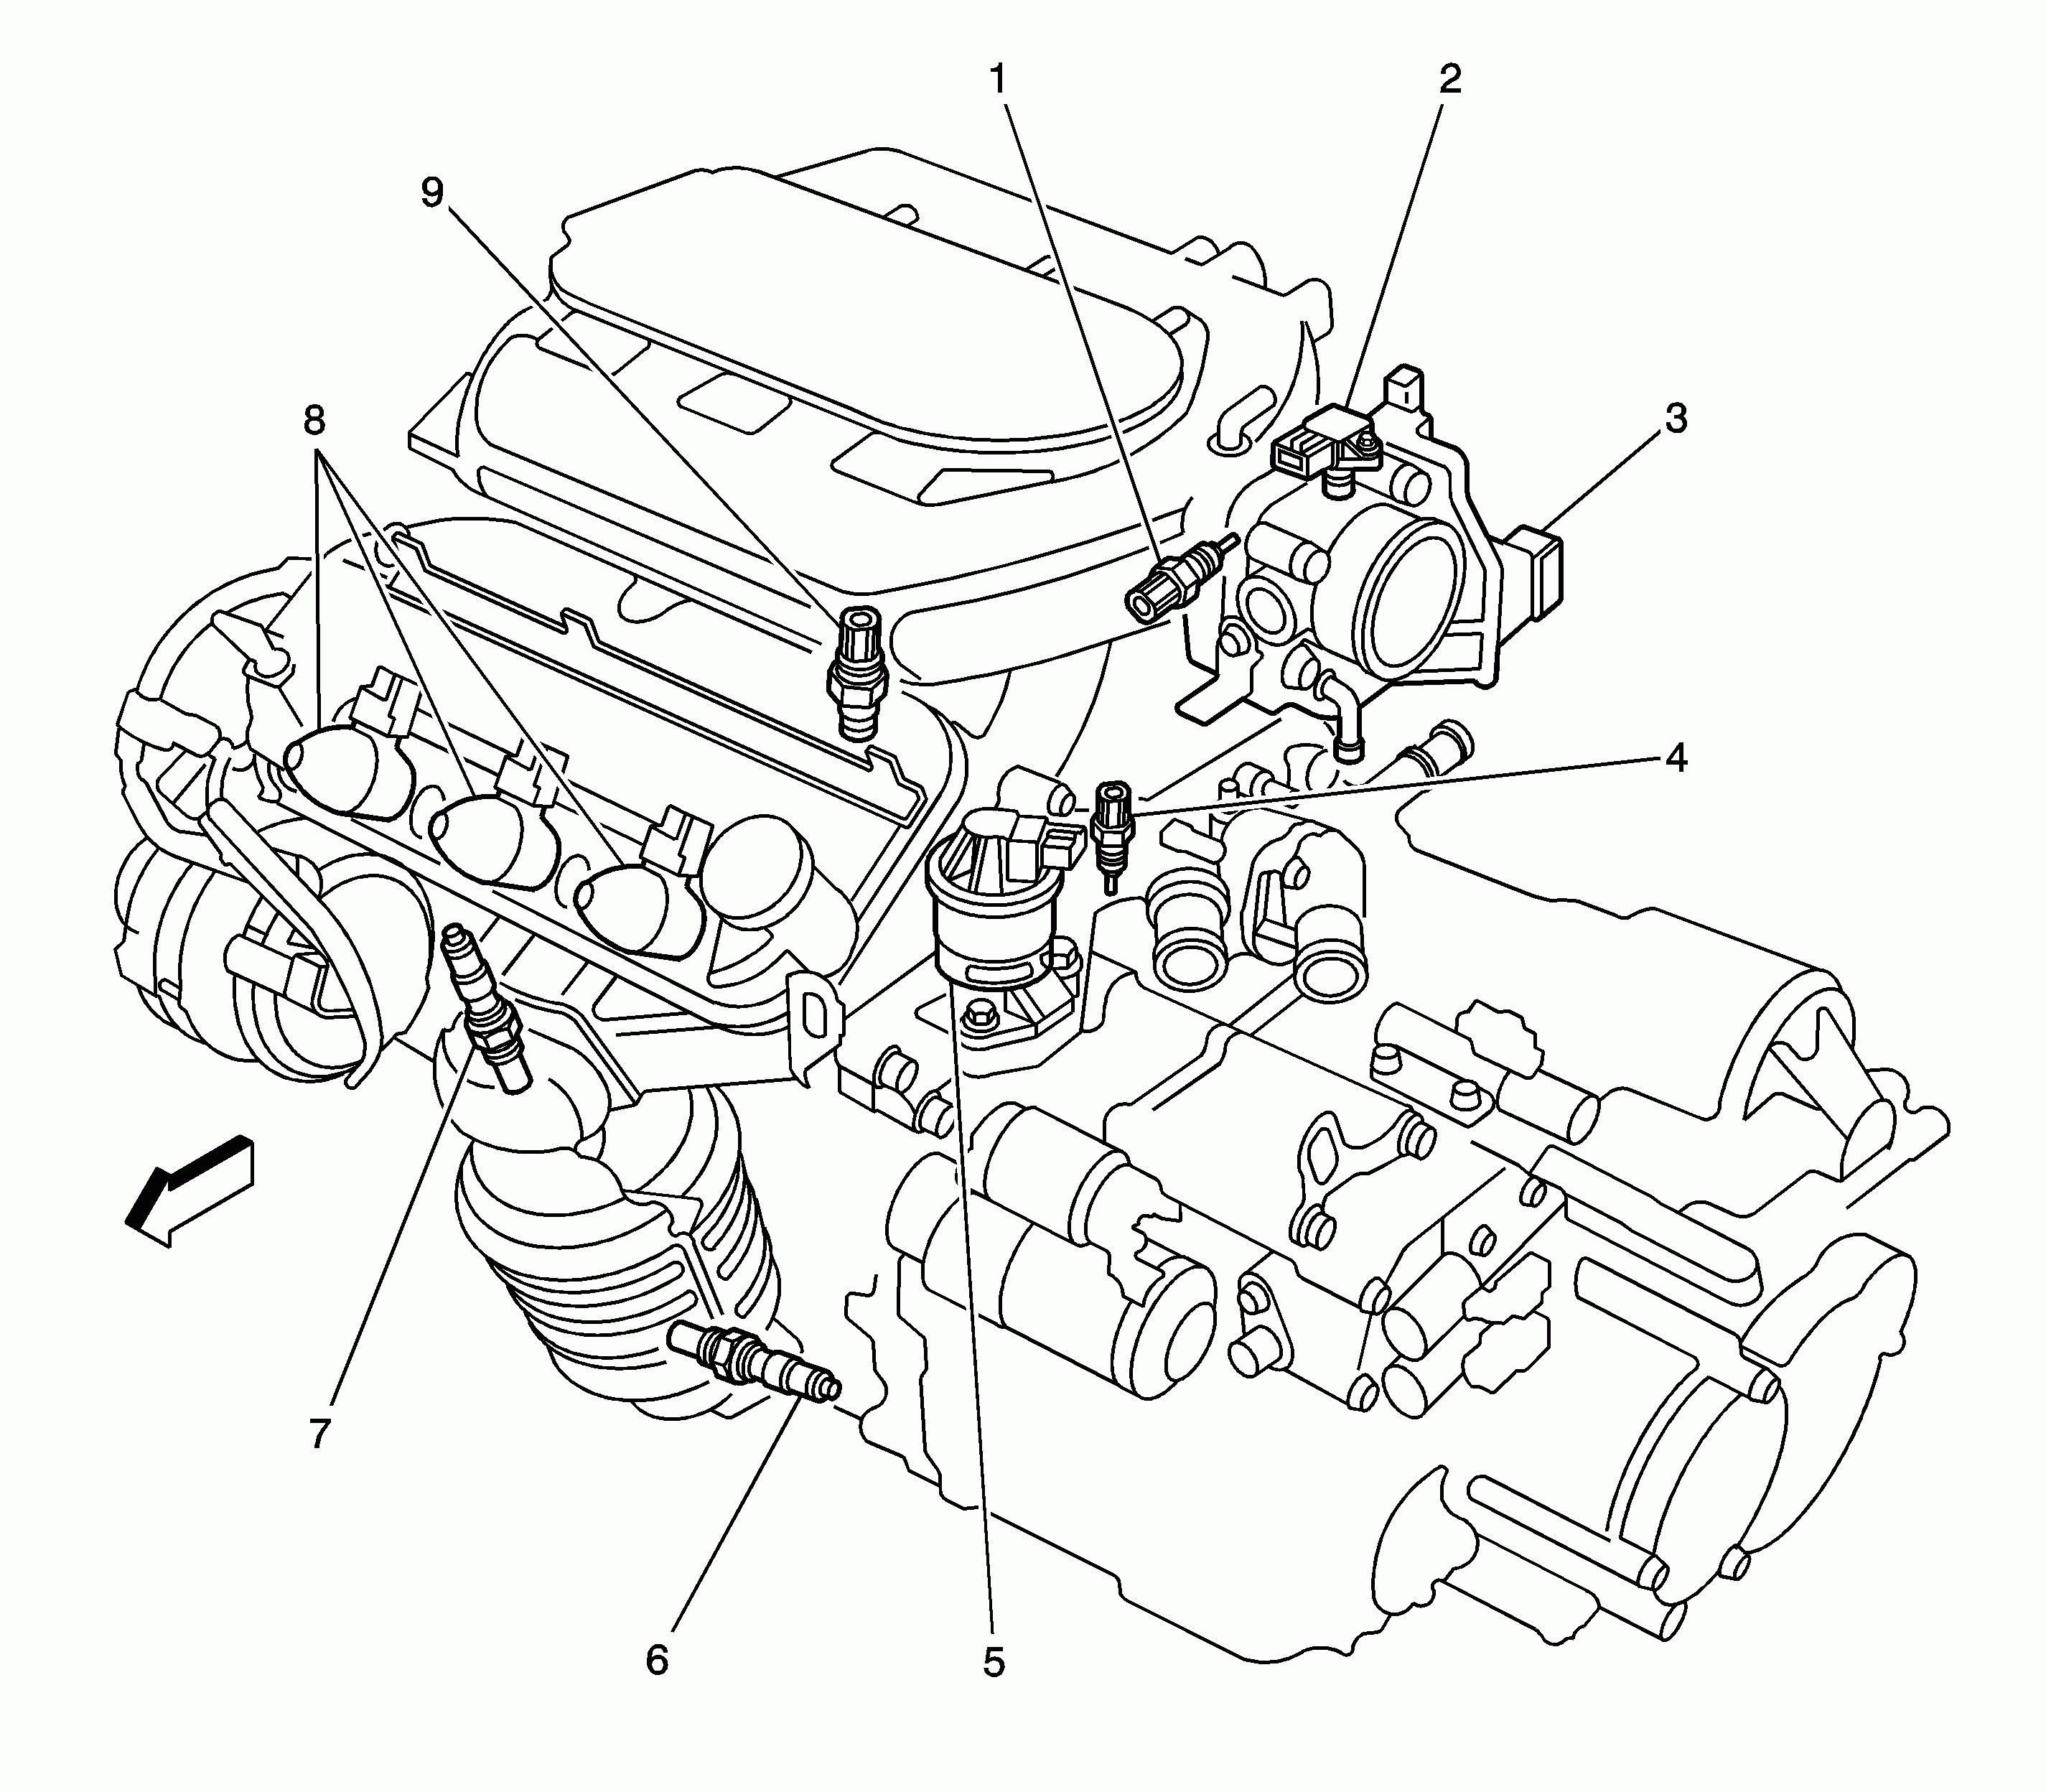 2000 Pontiac Bonneville Wiring Diagrams Automotive Wiring Diagram